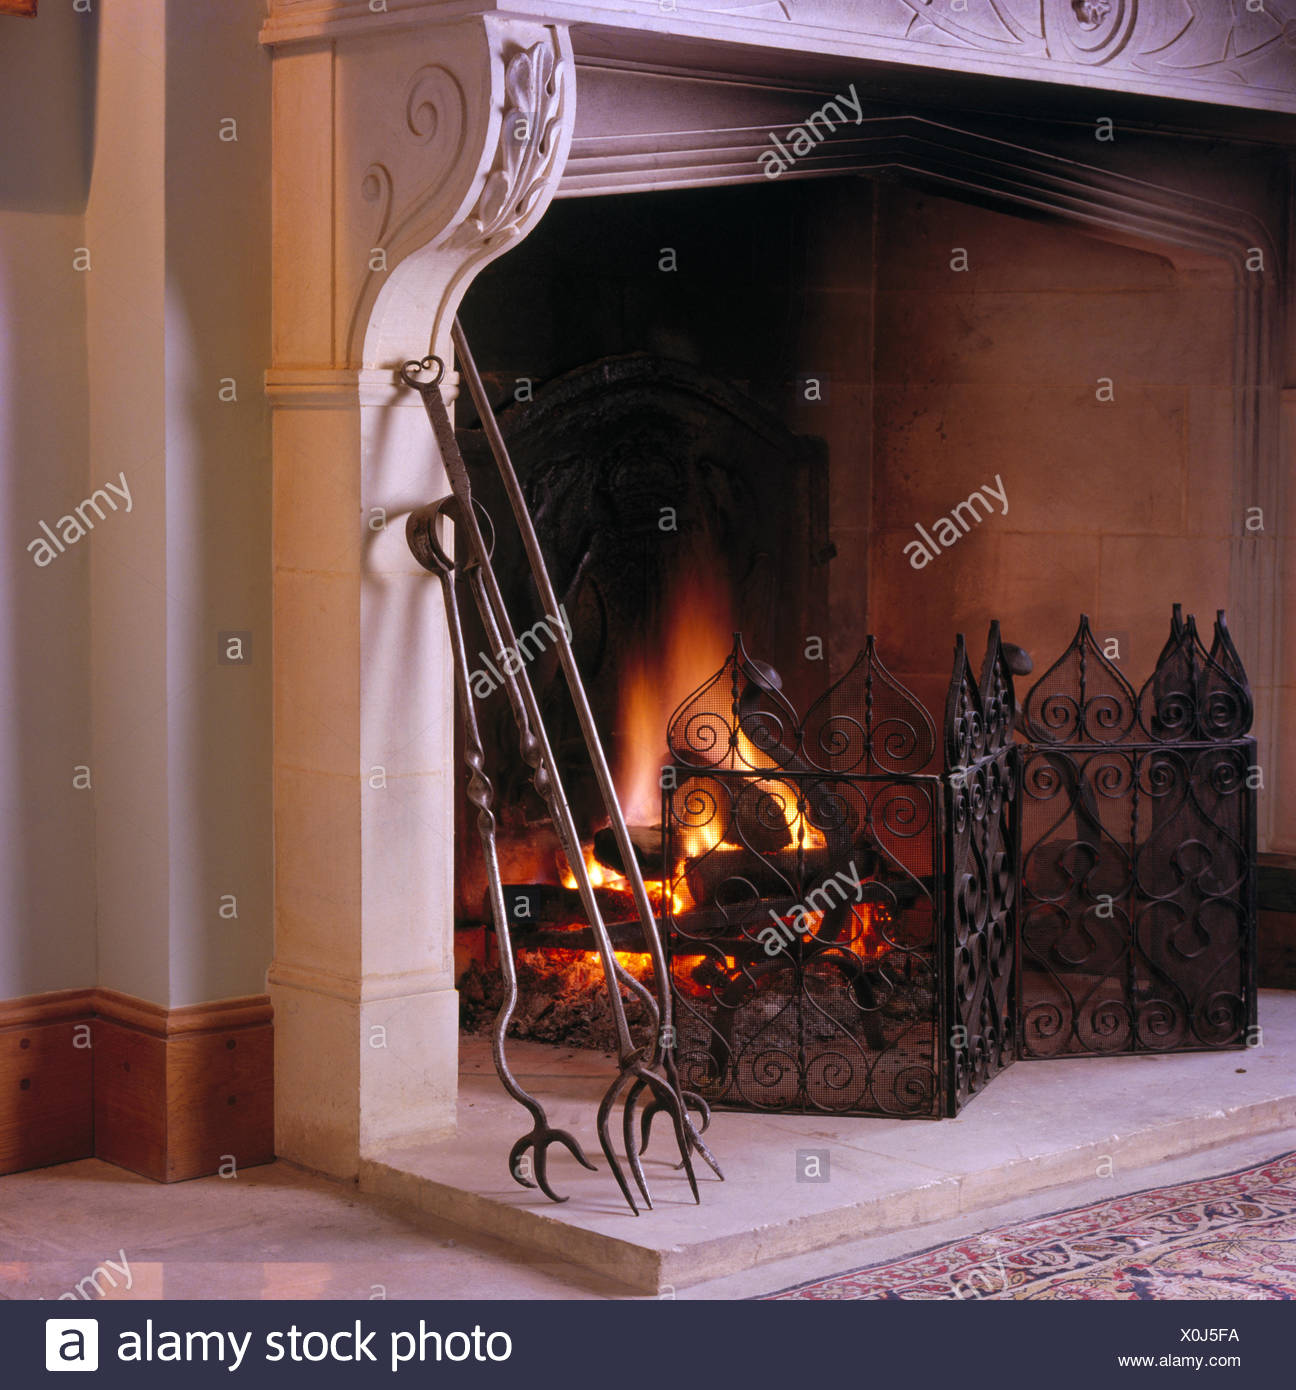 Close-up of fireplace with lighted fire and wrought iron fireguard and fire tongs - Stock Image